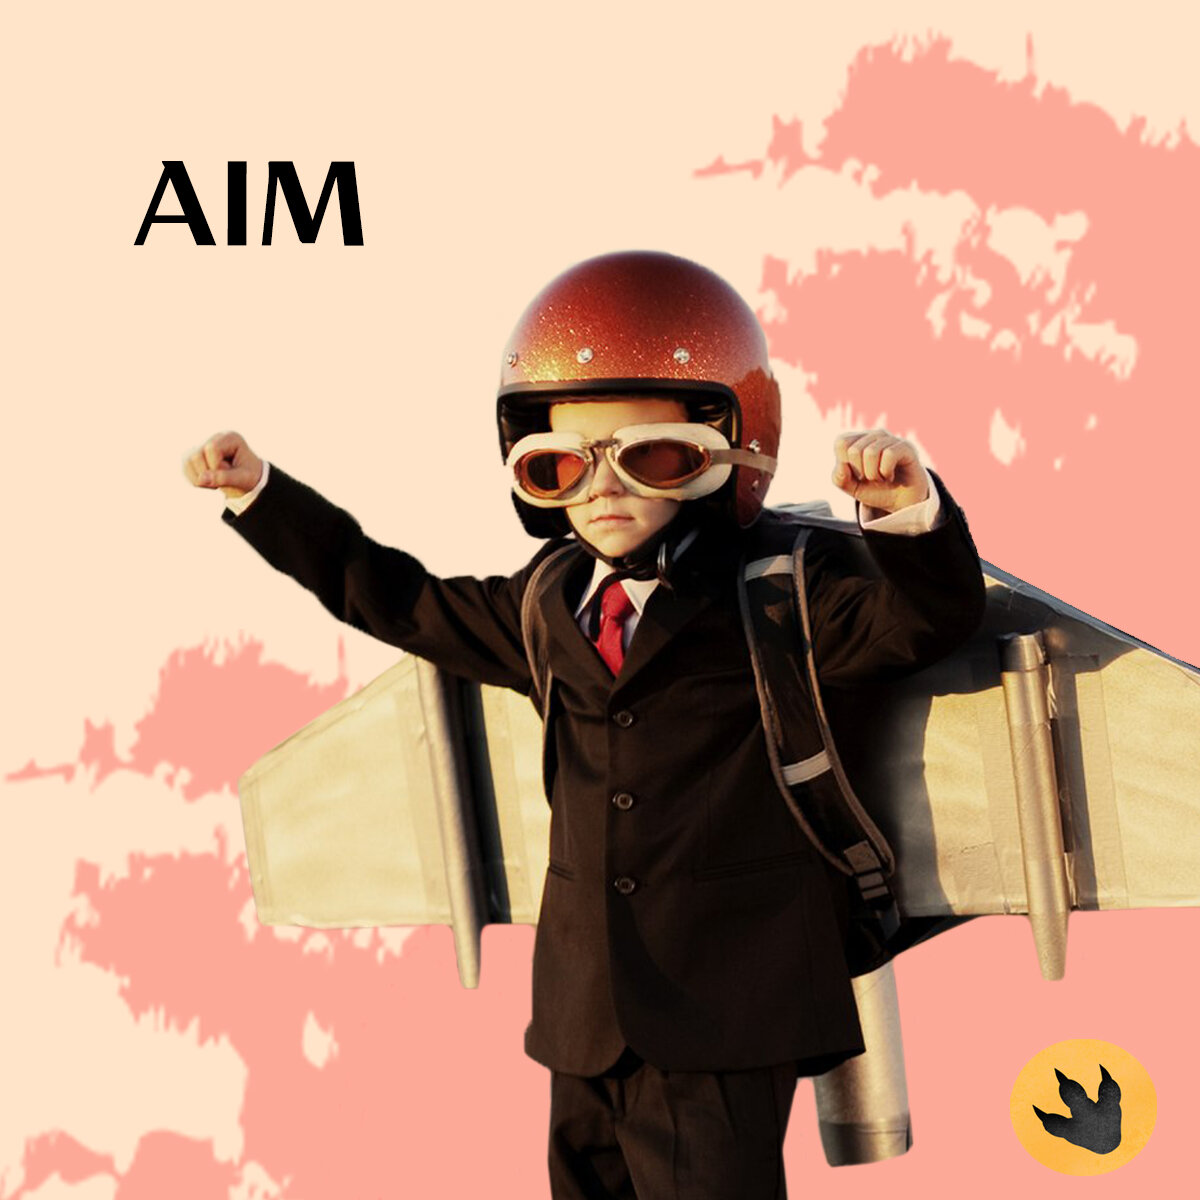 Today is a good day for creating an aim.